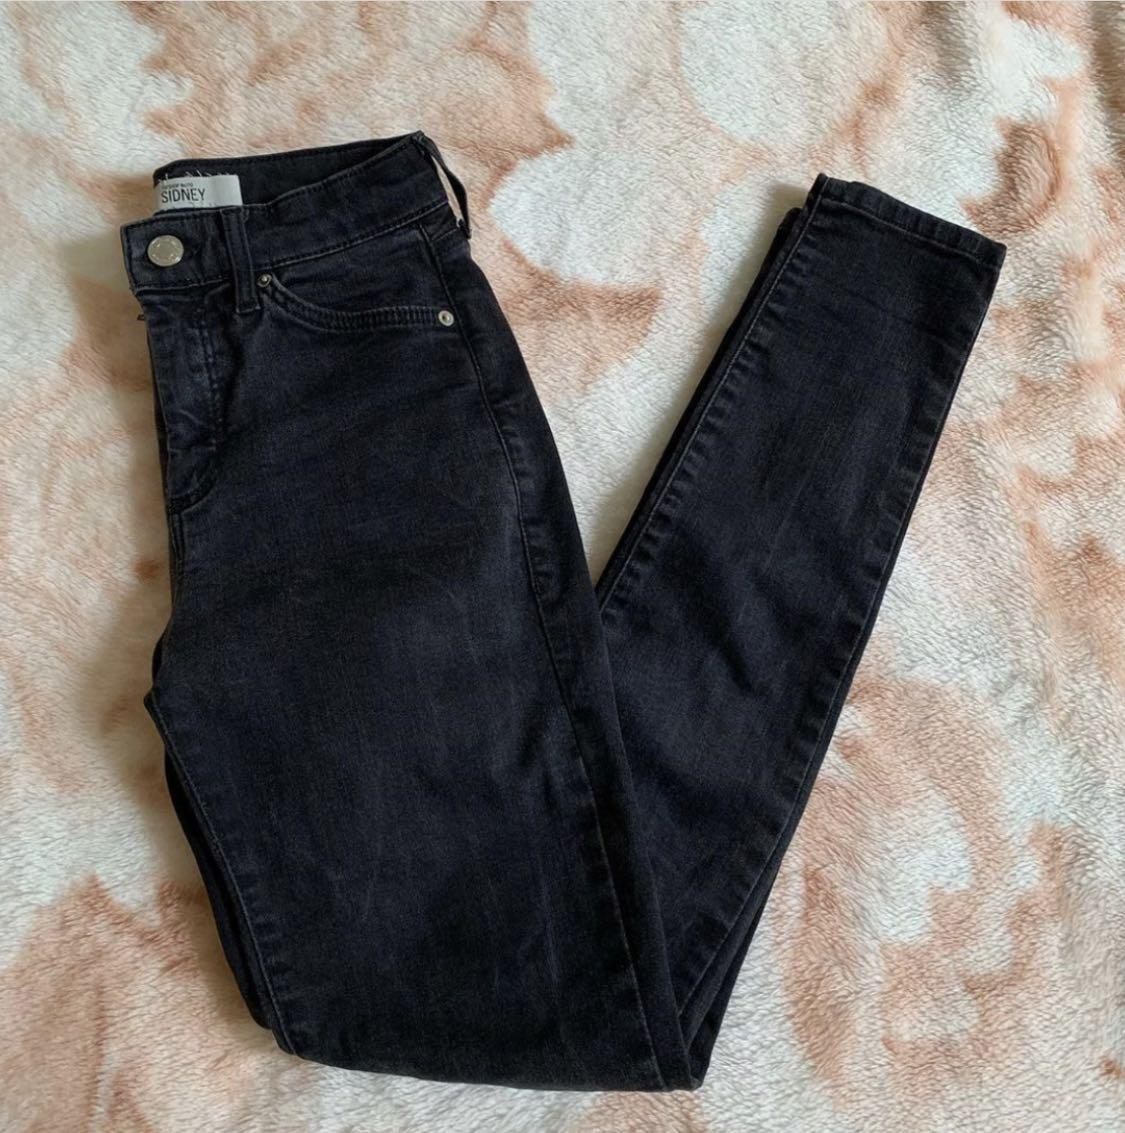 Topshop Sydney high waisted jeans with grey tones size 25